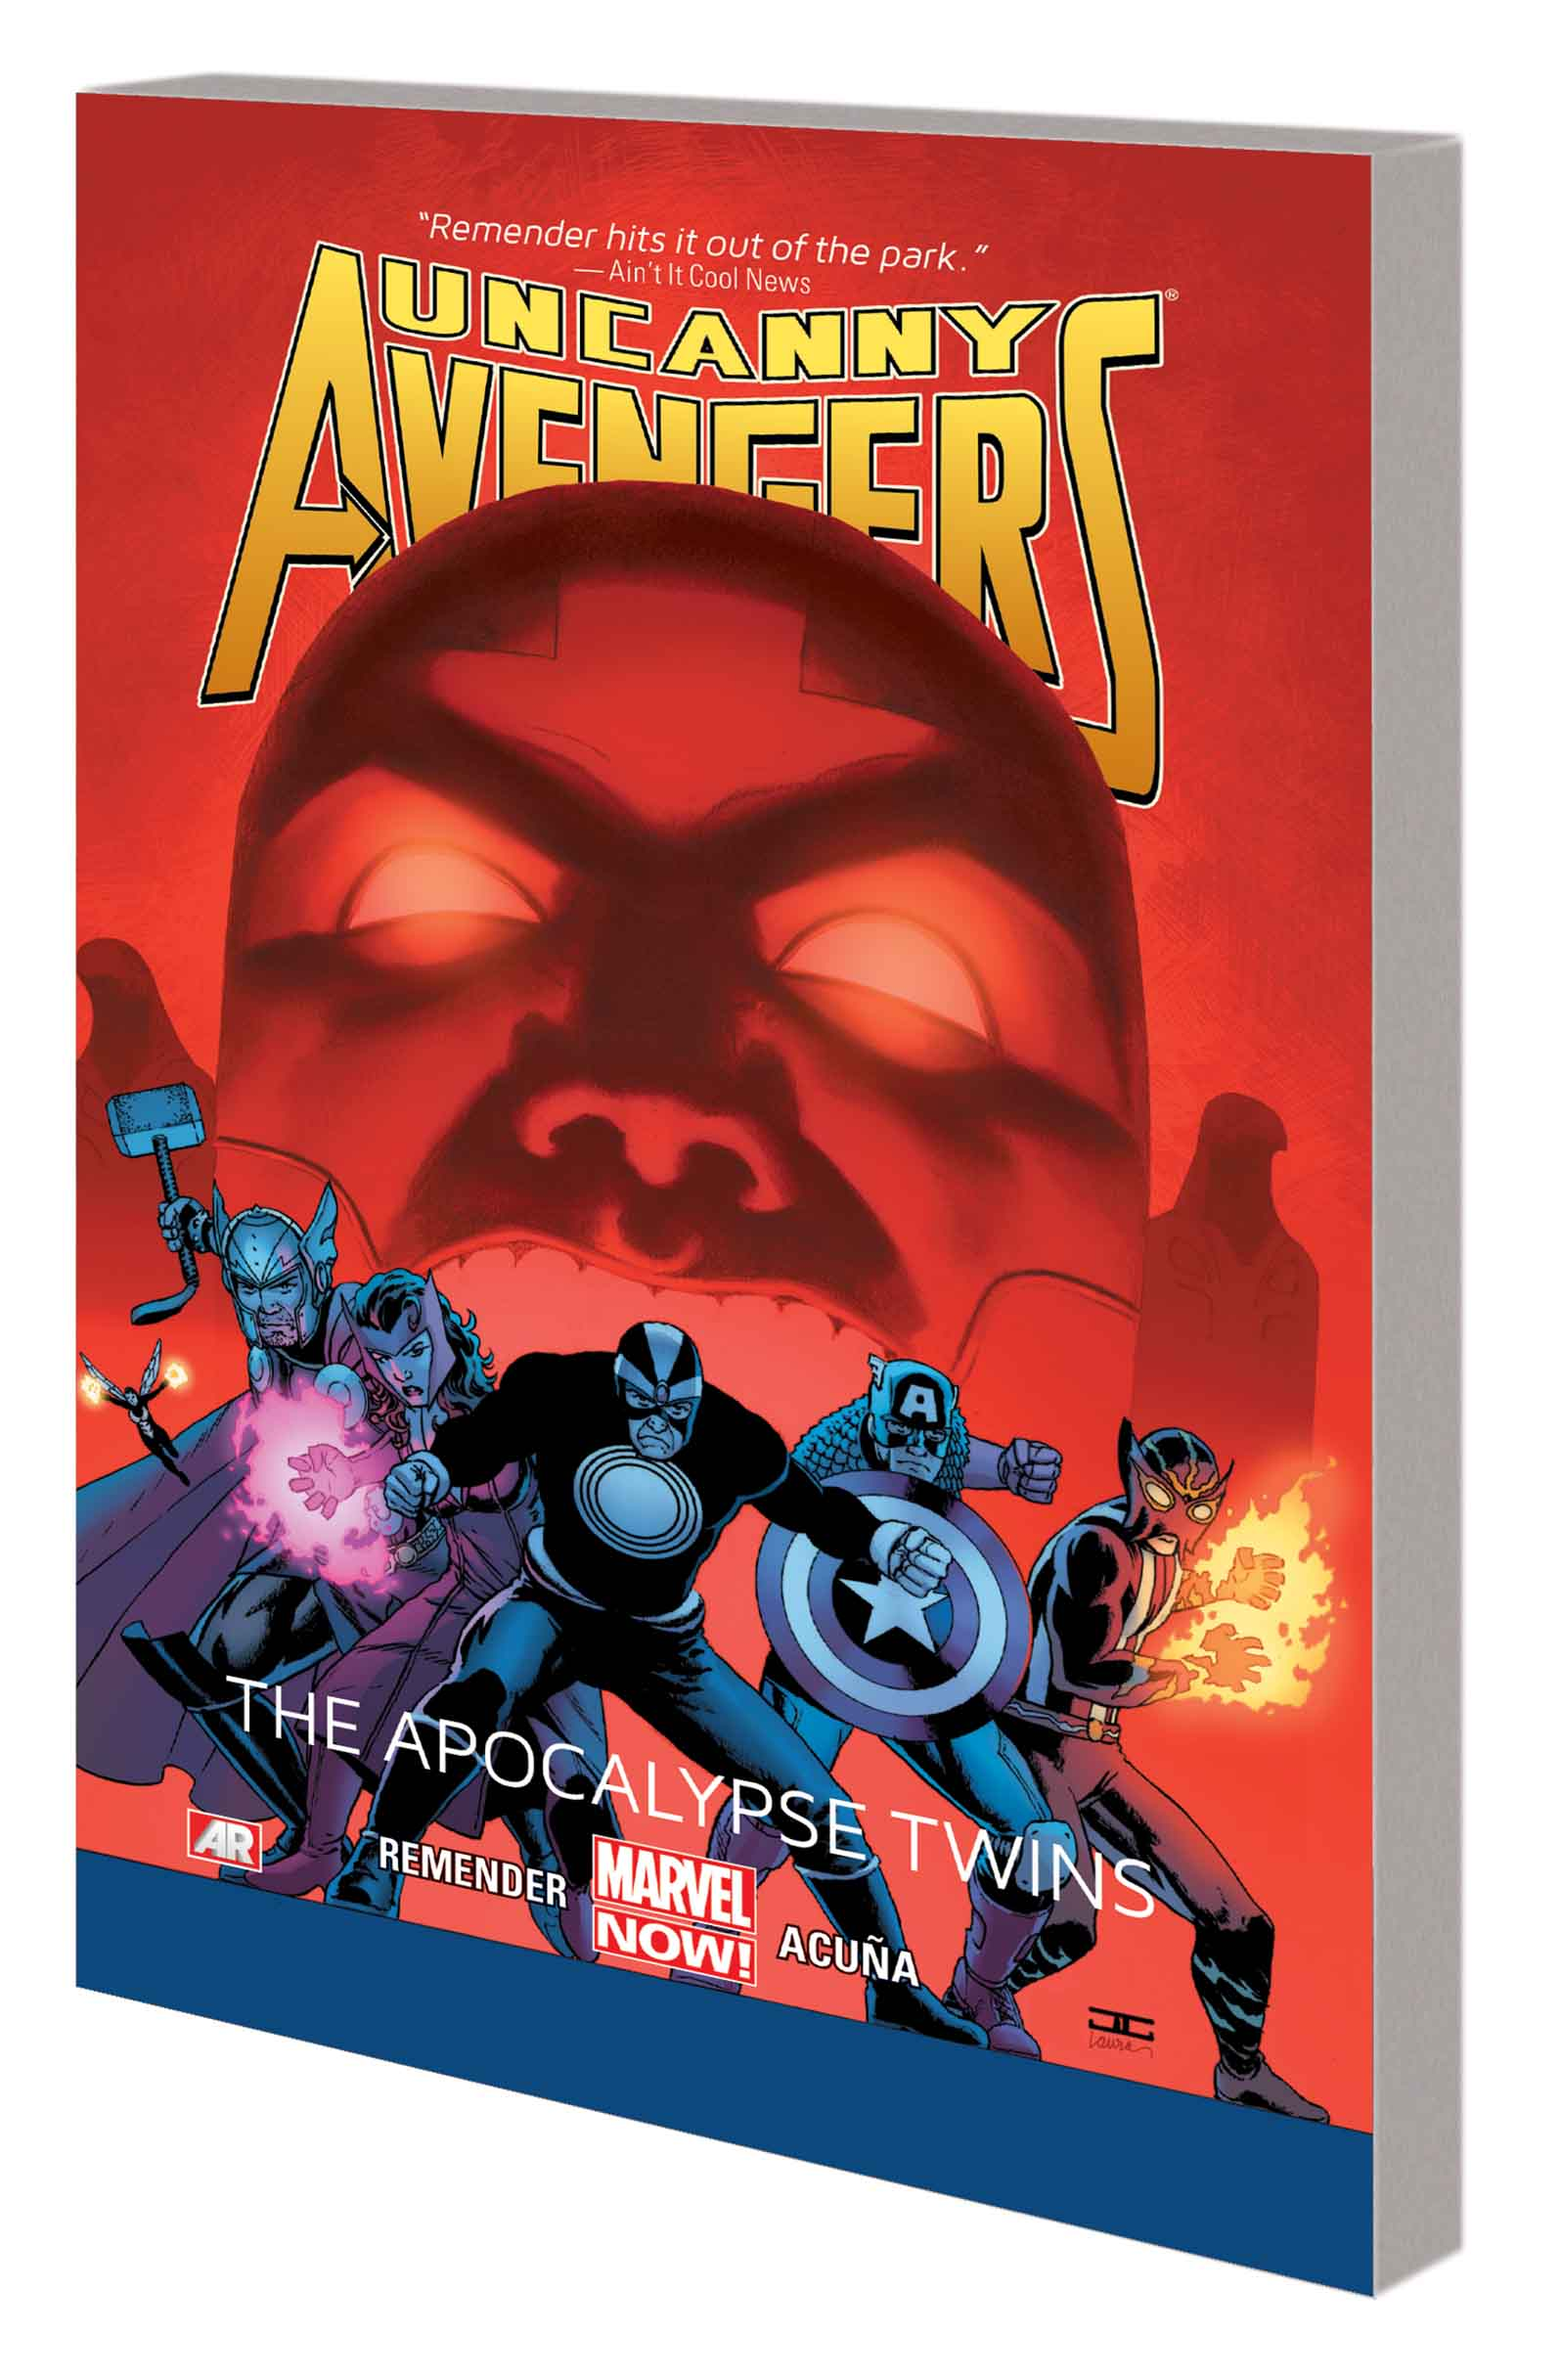 UNCANNY AVENGERS VOL. 2: THE APOCALYPSE TWINS TPB  (Trade Paperback)